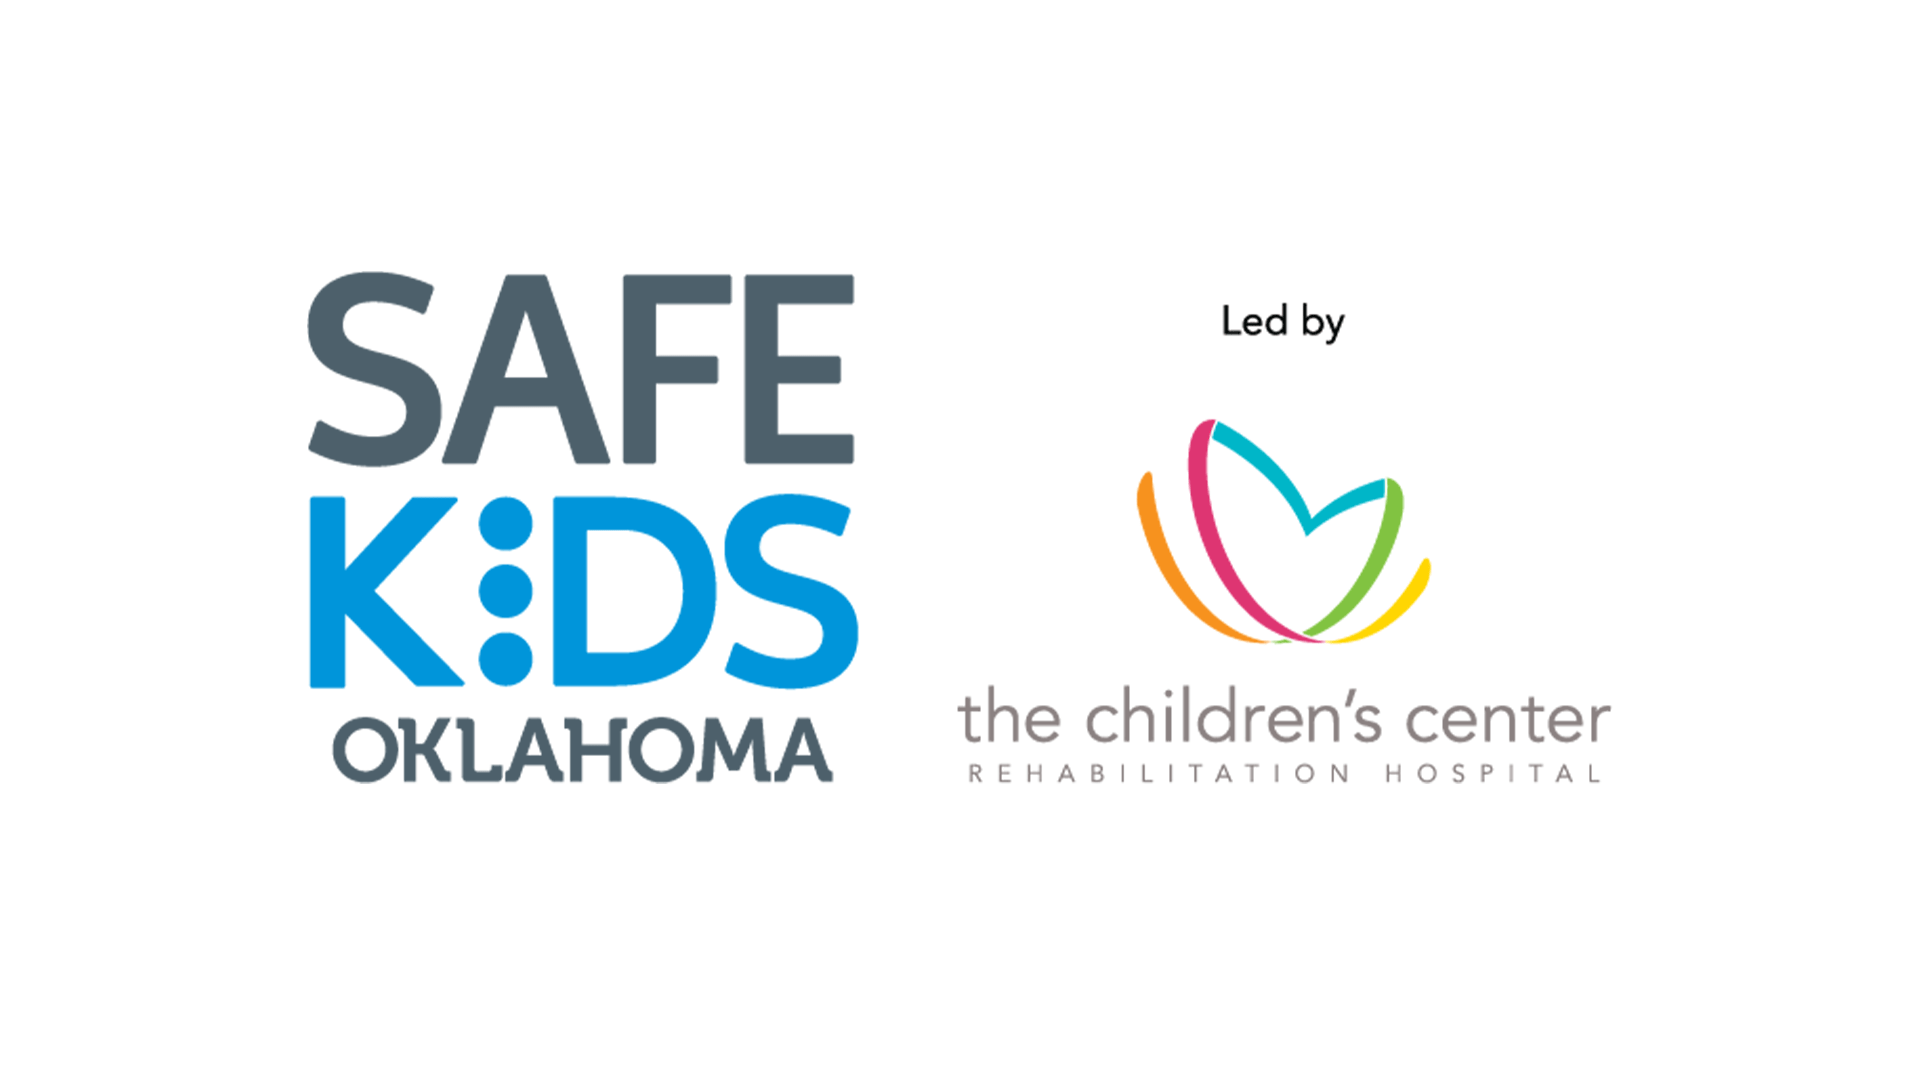 Our Hospital in the Community – Safe Kids Oklahoma